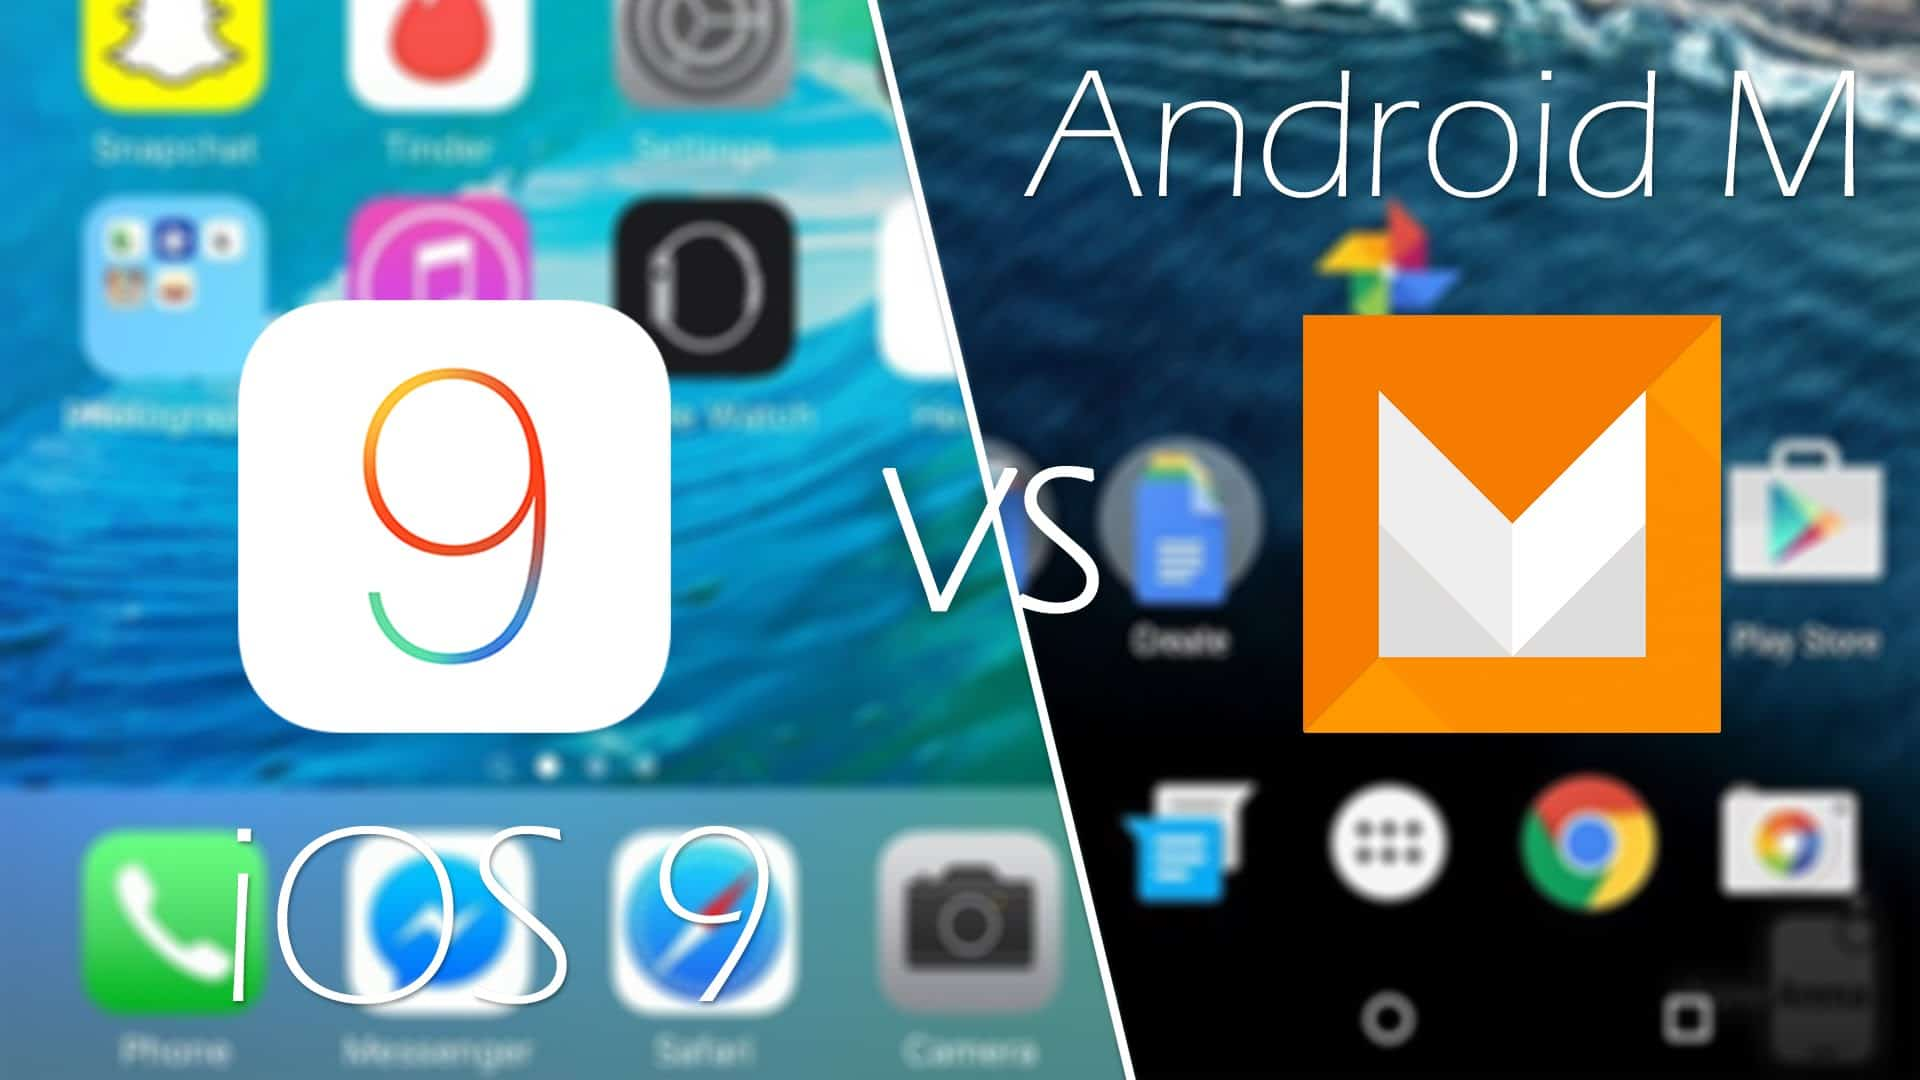 Android Marshmallow Vs Apple iOS 9 Comparison: Which one wins? 1